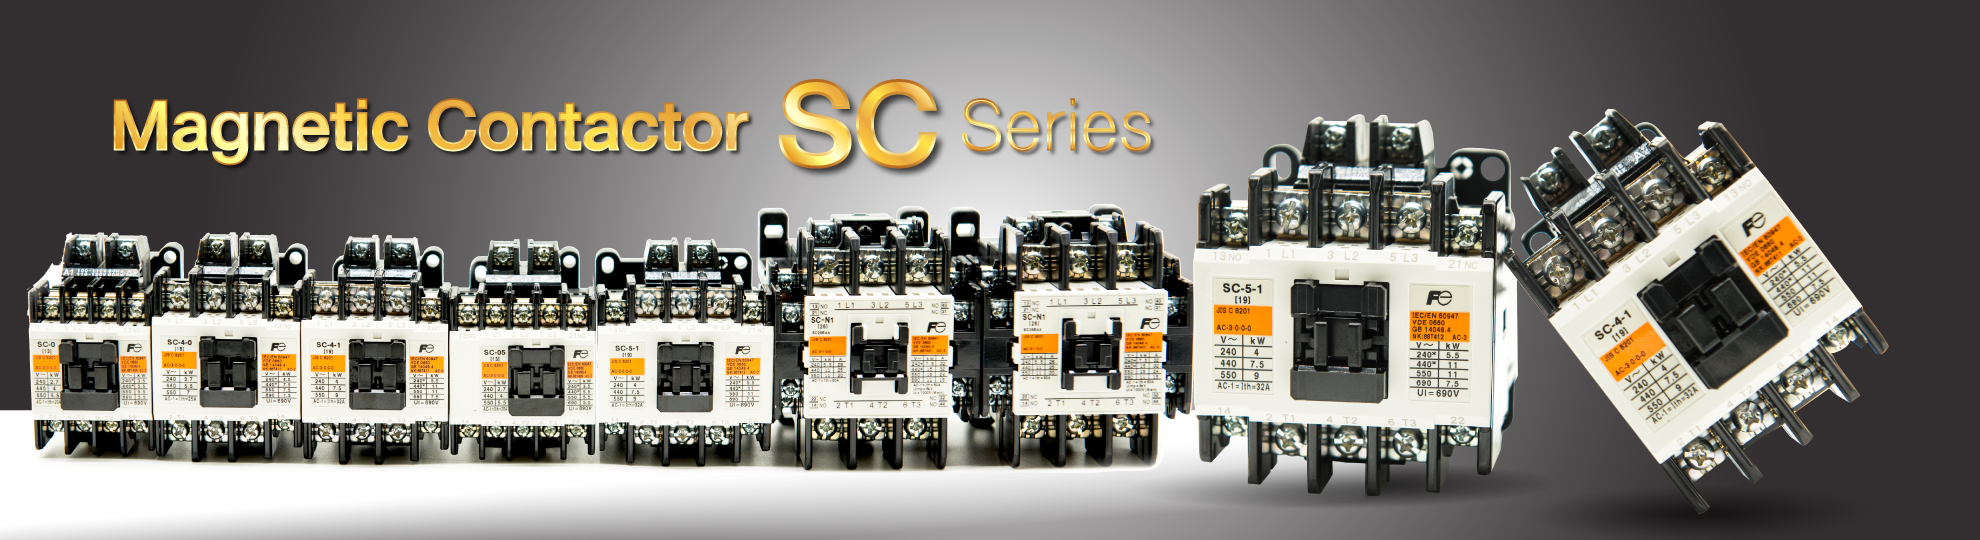 Magnetic Contactor SC Series